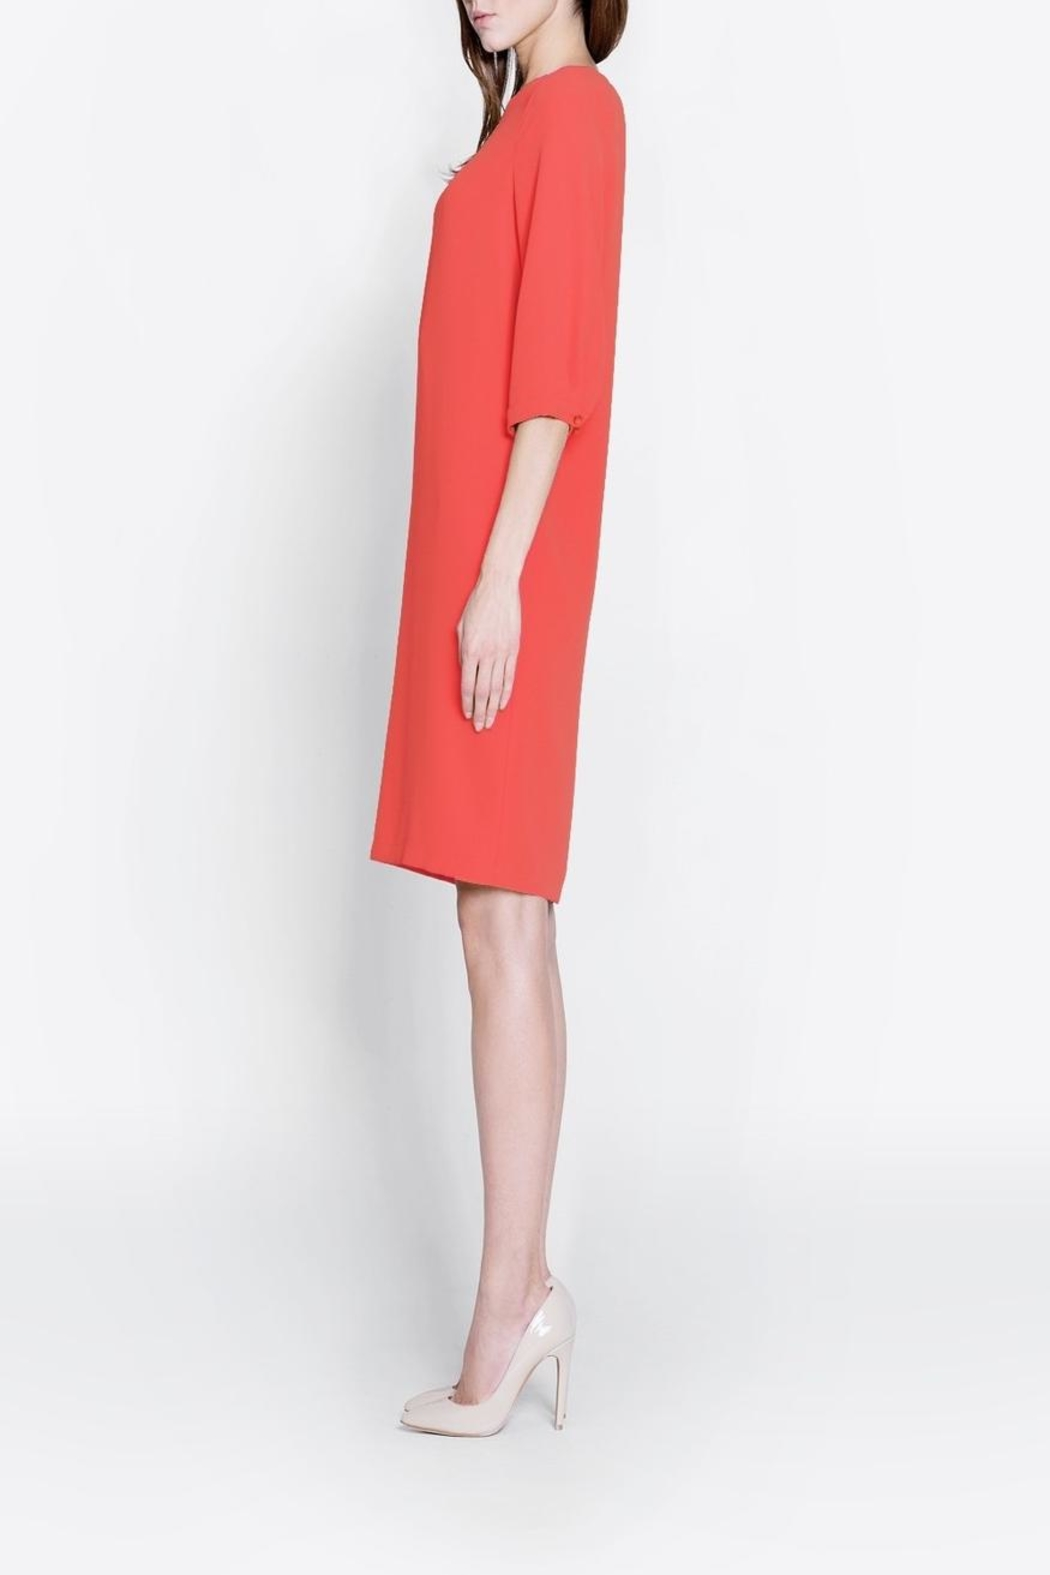 CYRILLE GASSILINE A Line Dress - Side Cropped Image